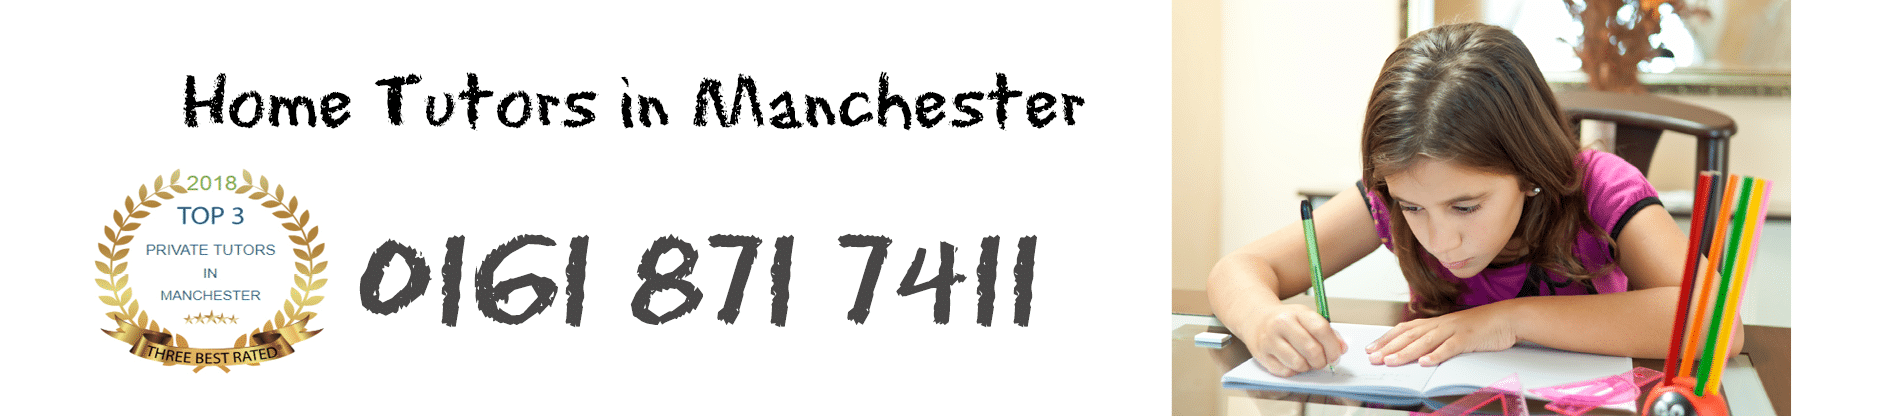 Home Tutors in Manchester